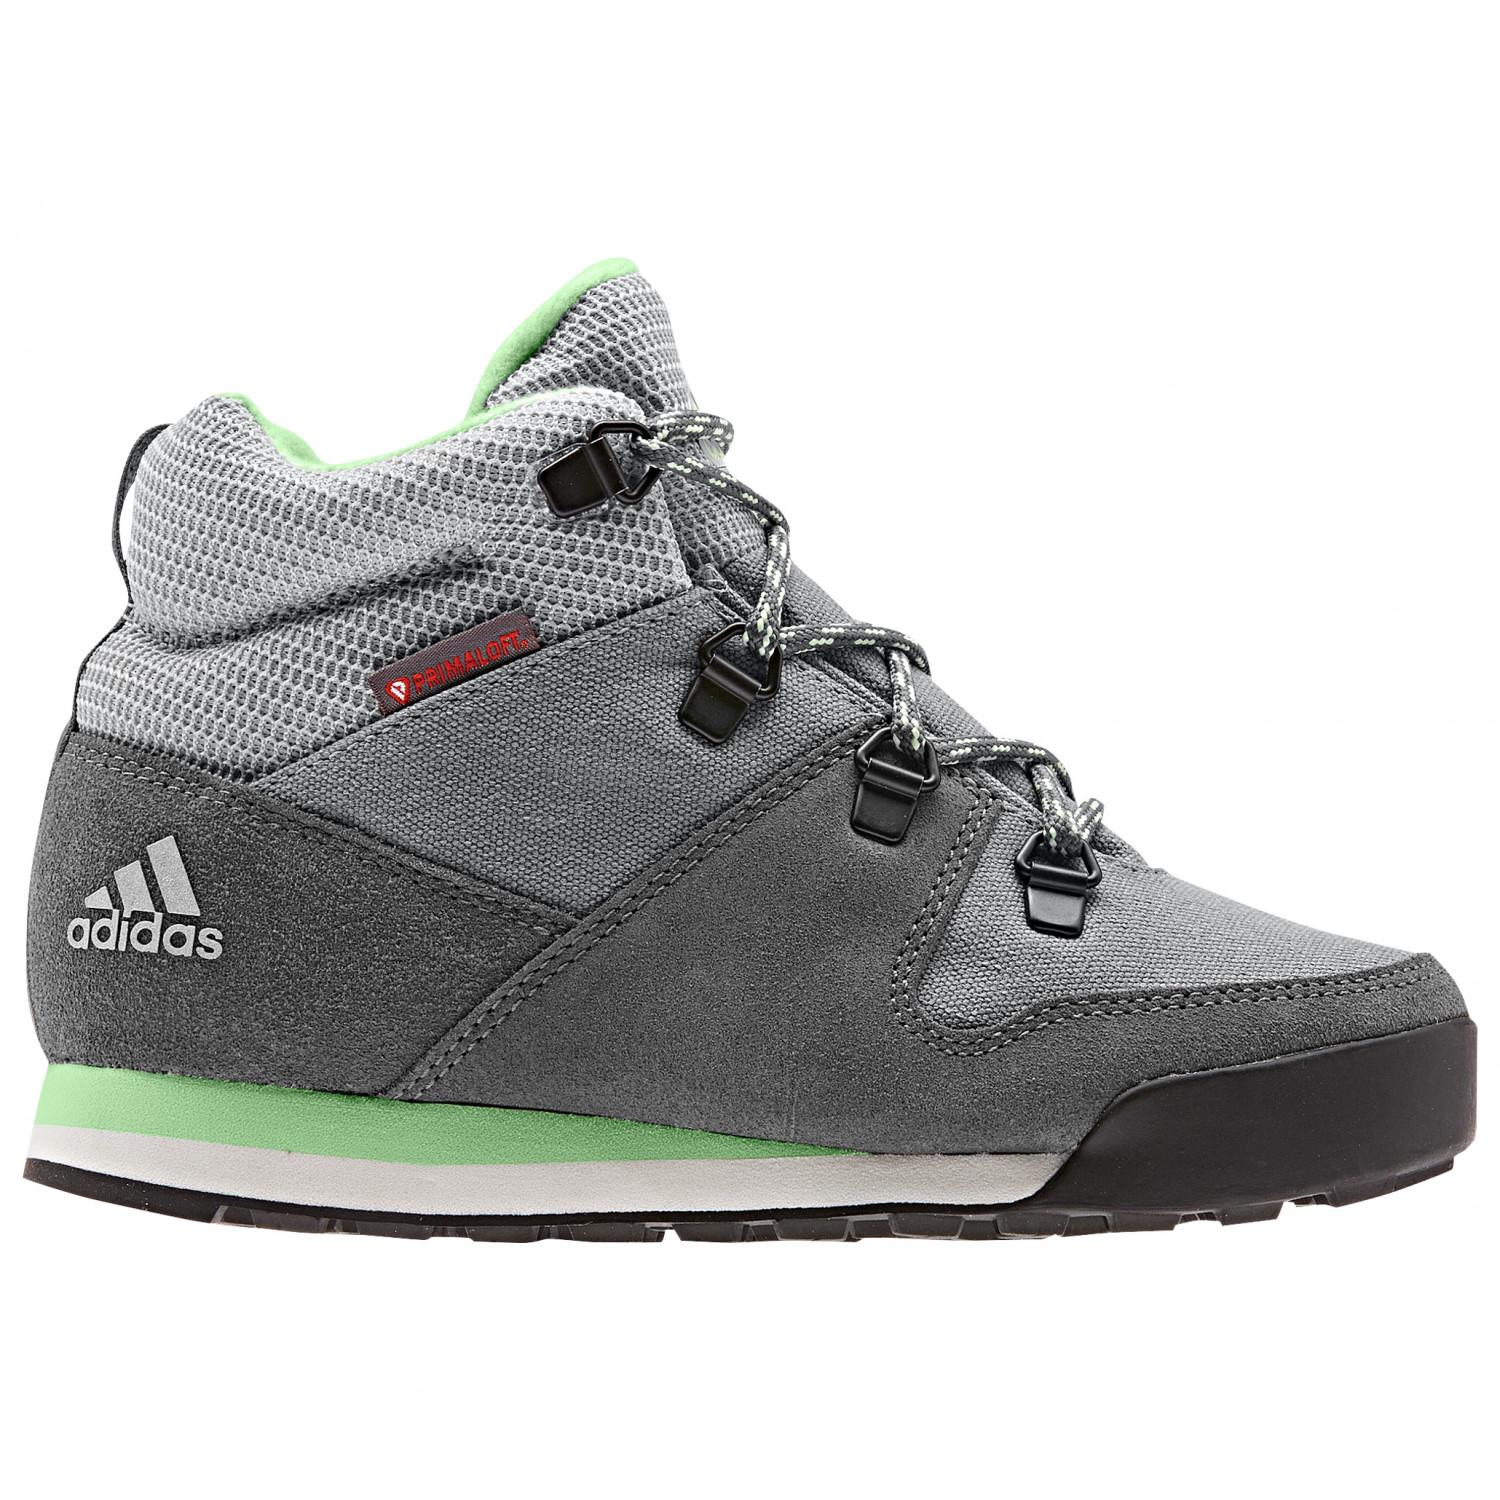 adidas Kid's CW Snowpitch Chaussures d'hiver